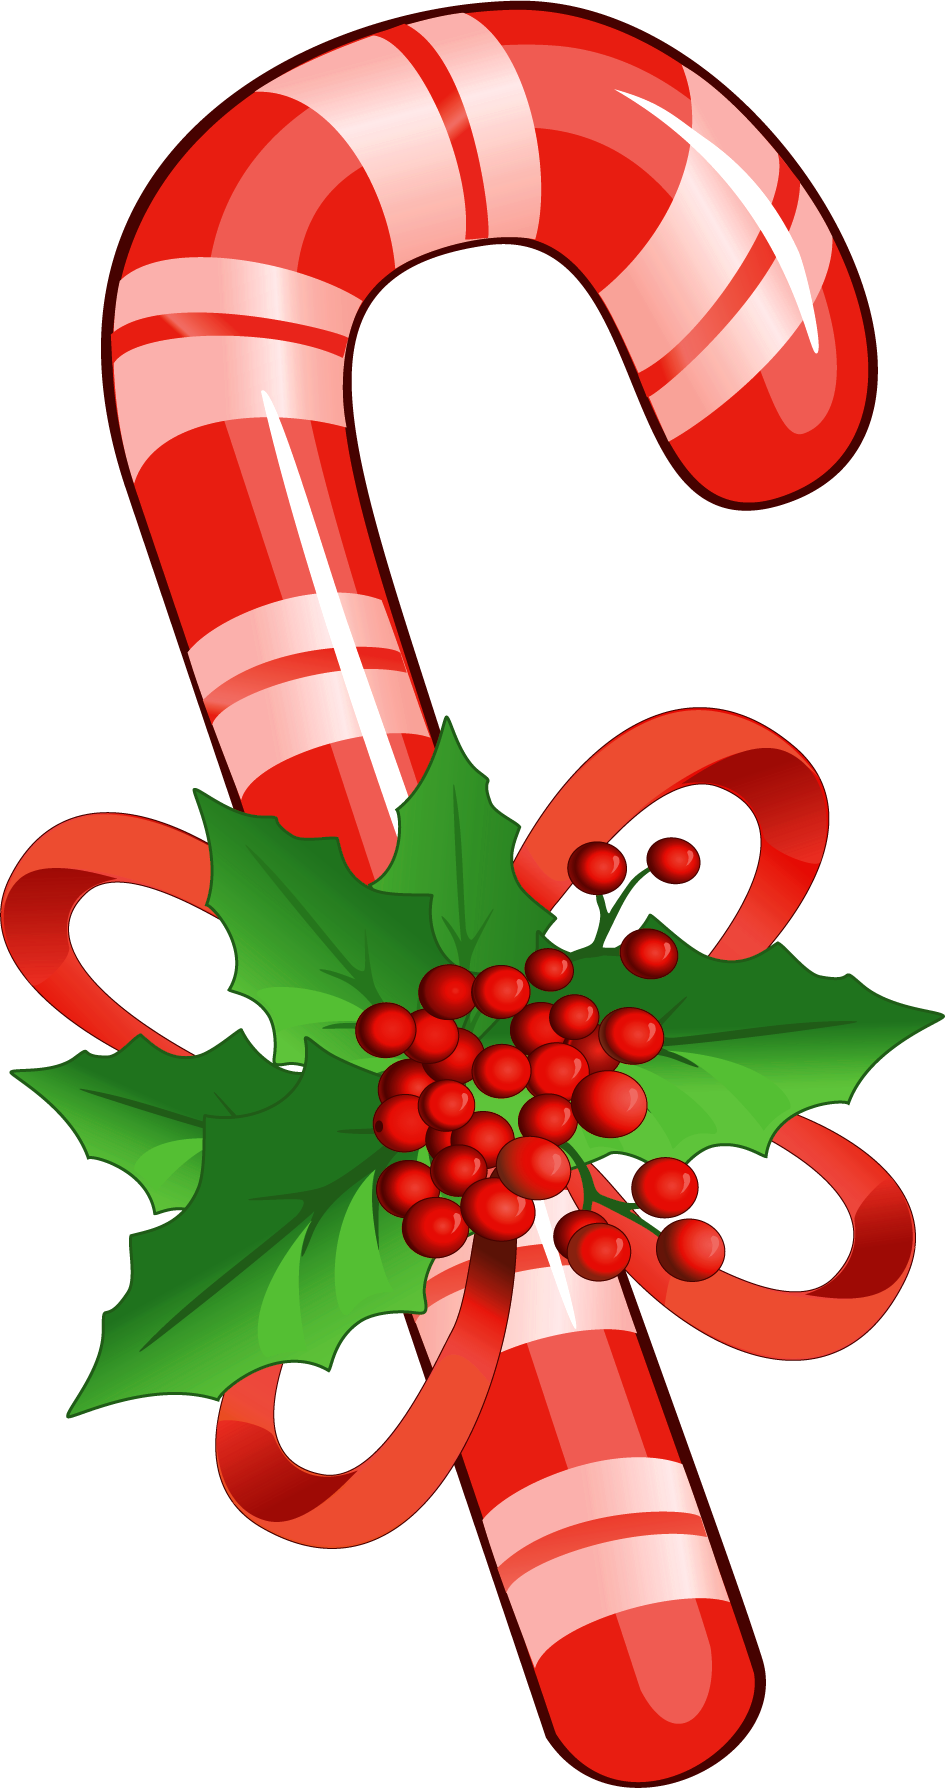 Candy cane png google. Clipart christmas treat